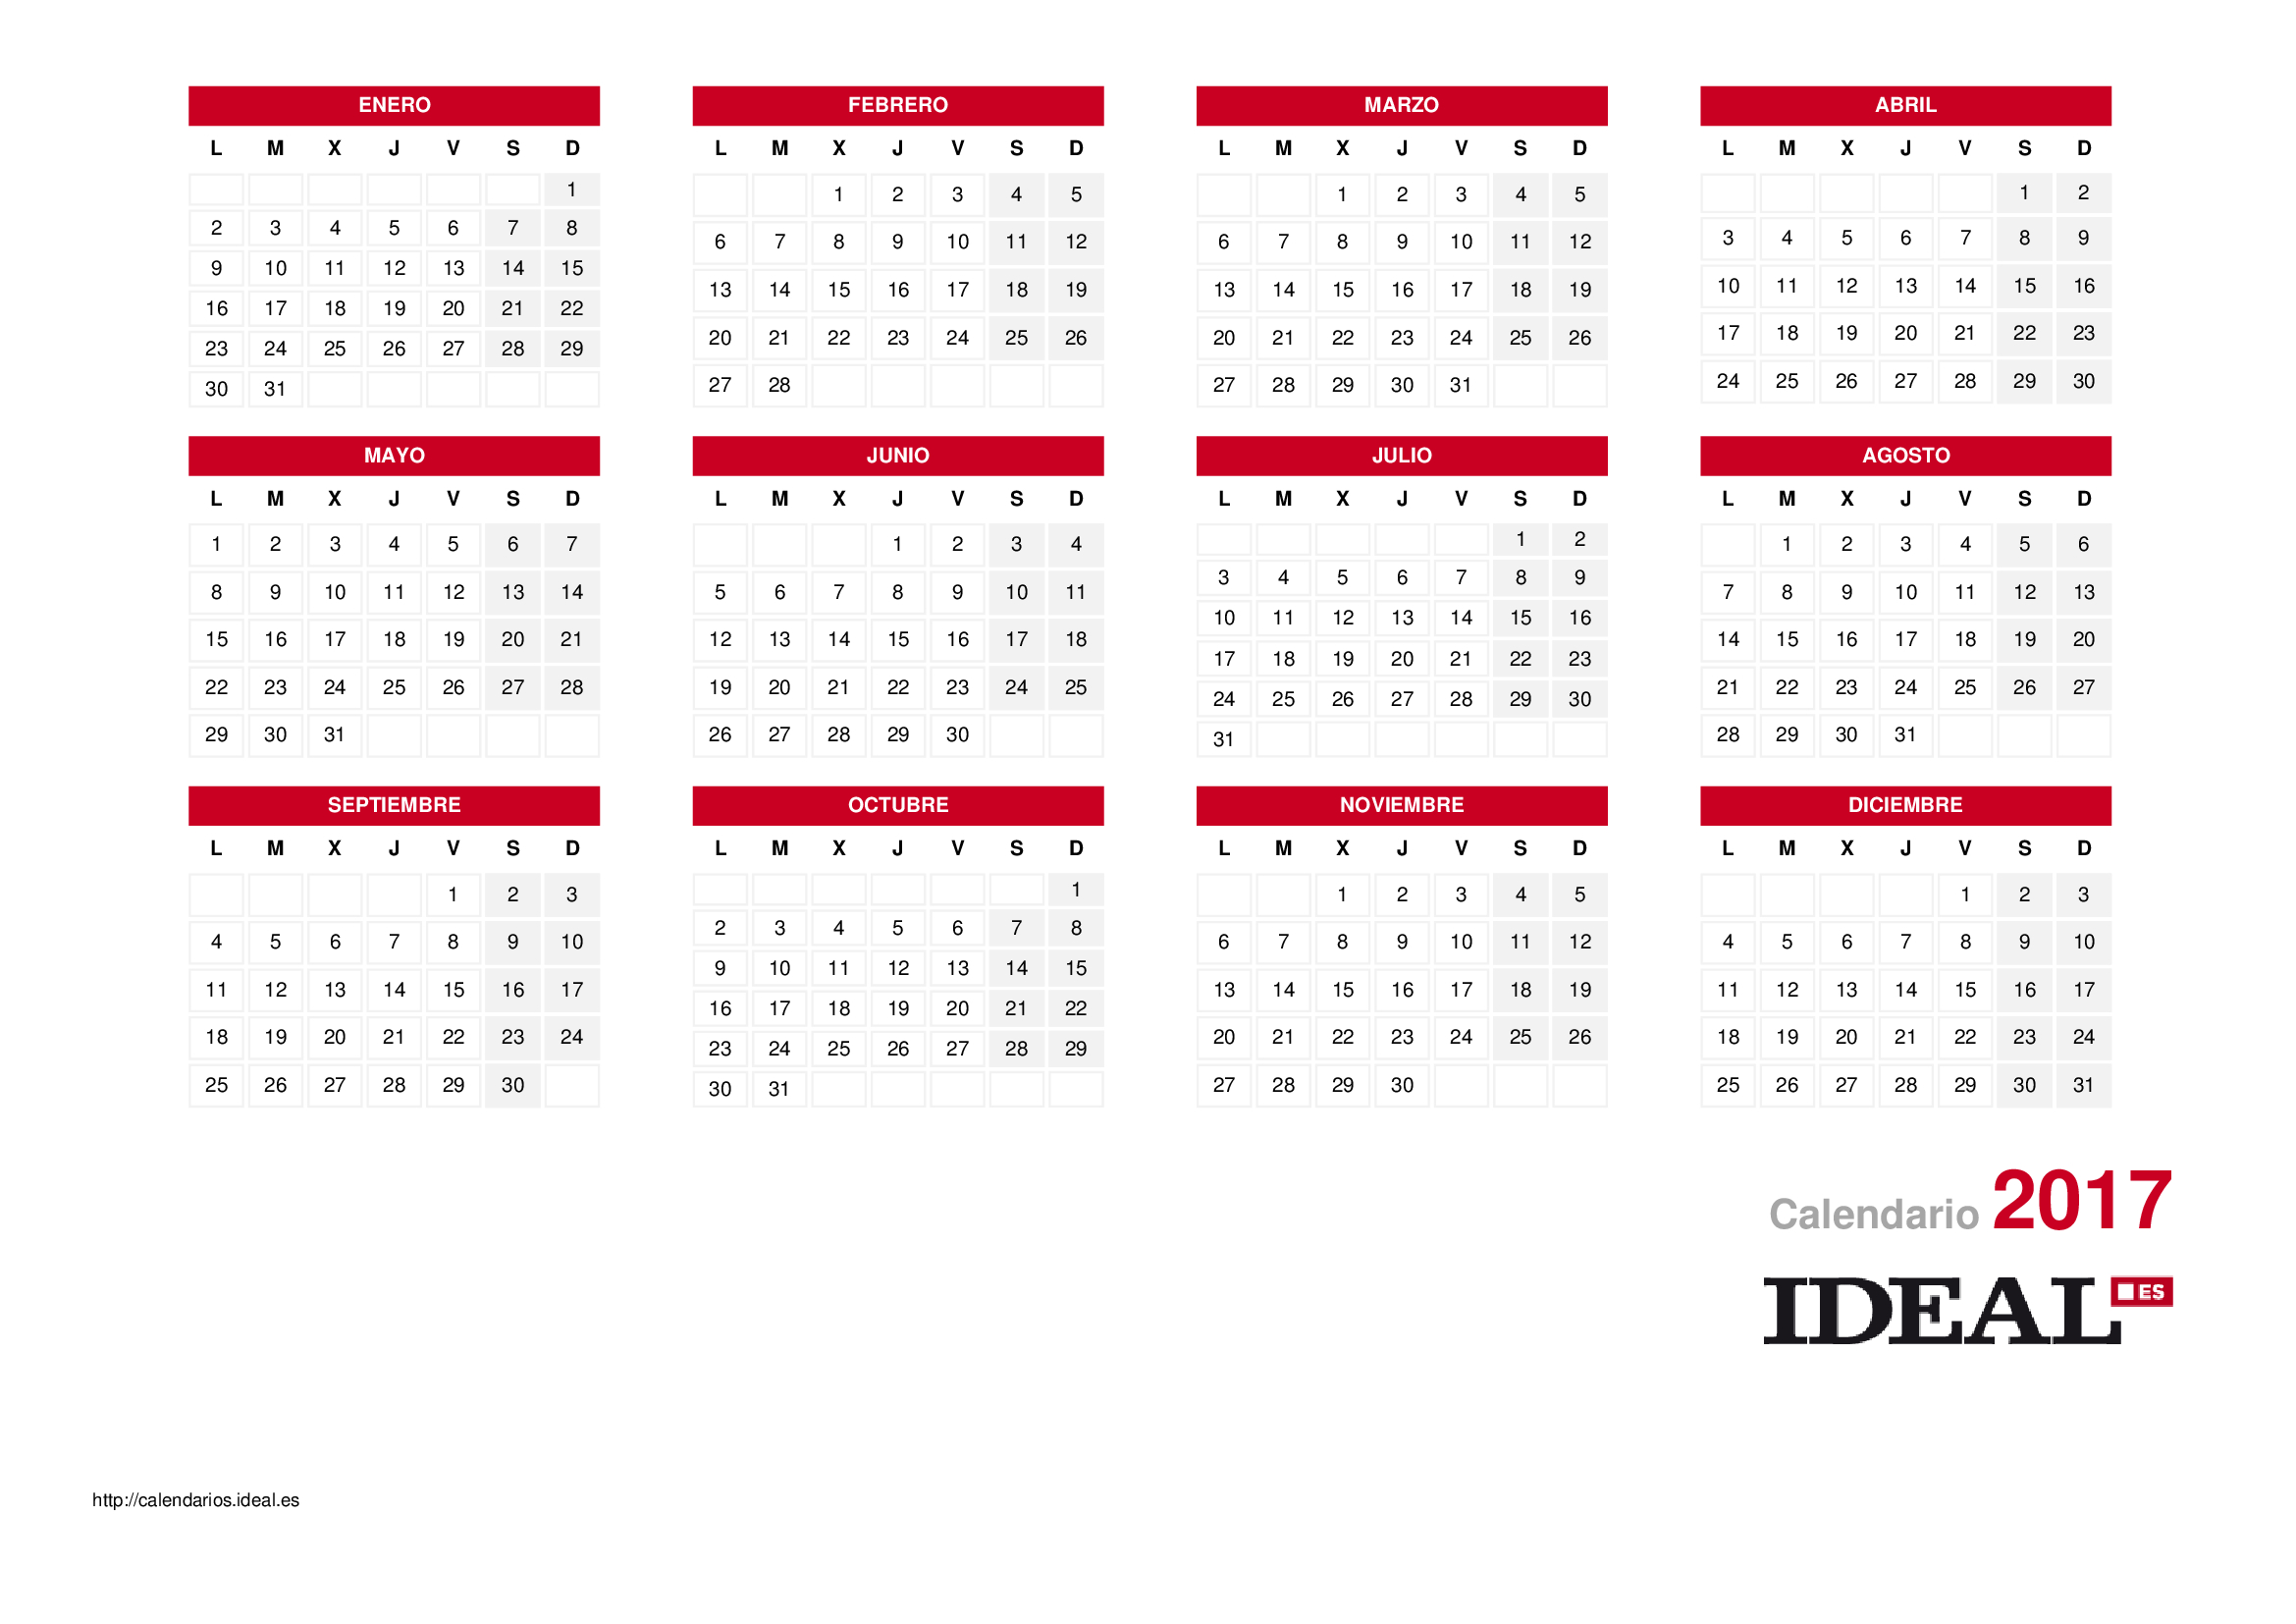 Calendario Laboral Bilbao.Calendario Laboral De 2019 Calendarios Ideal Dias Festivos